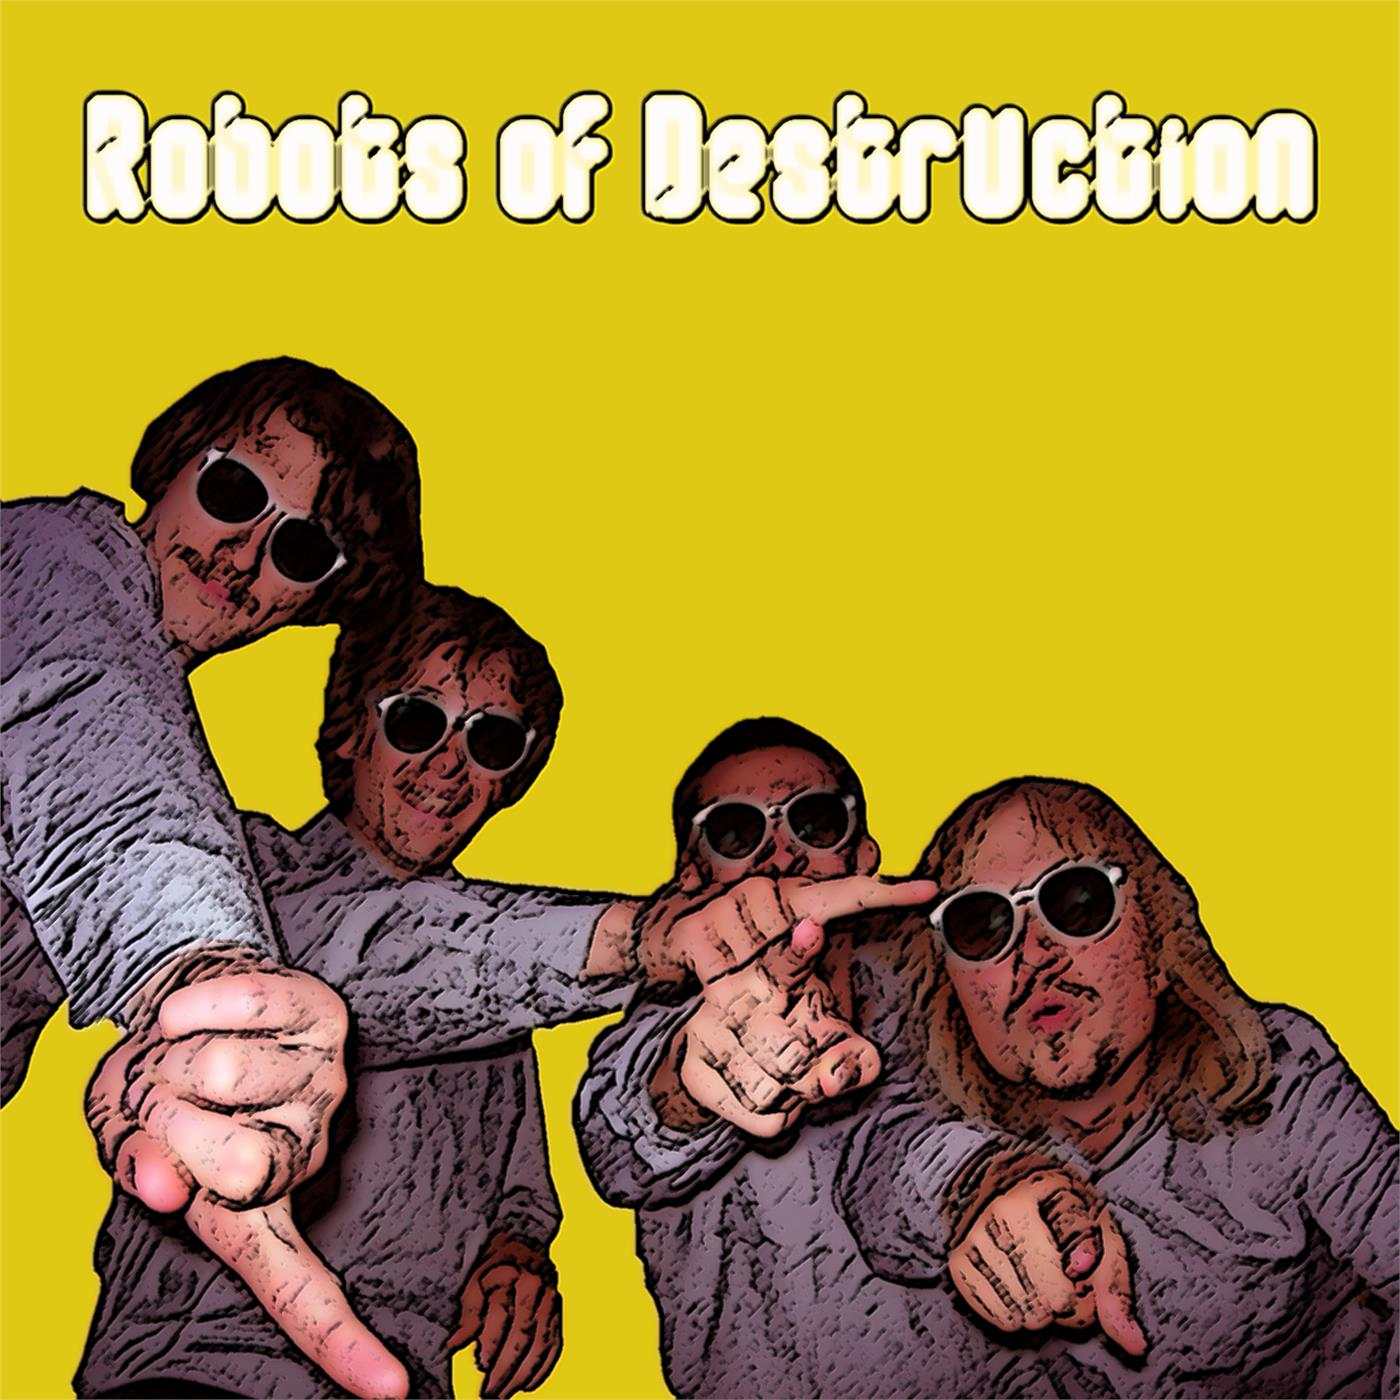 WE ARE THE ROBOTS (OF DESTRUCTION)